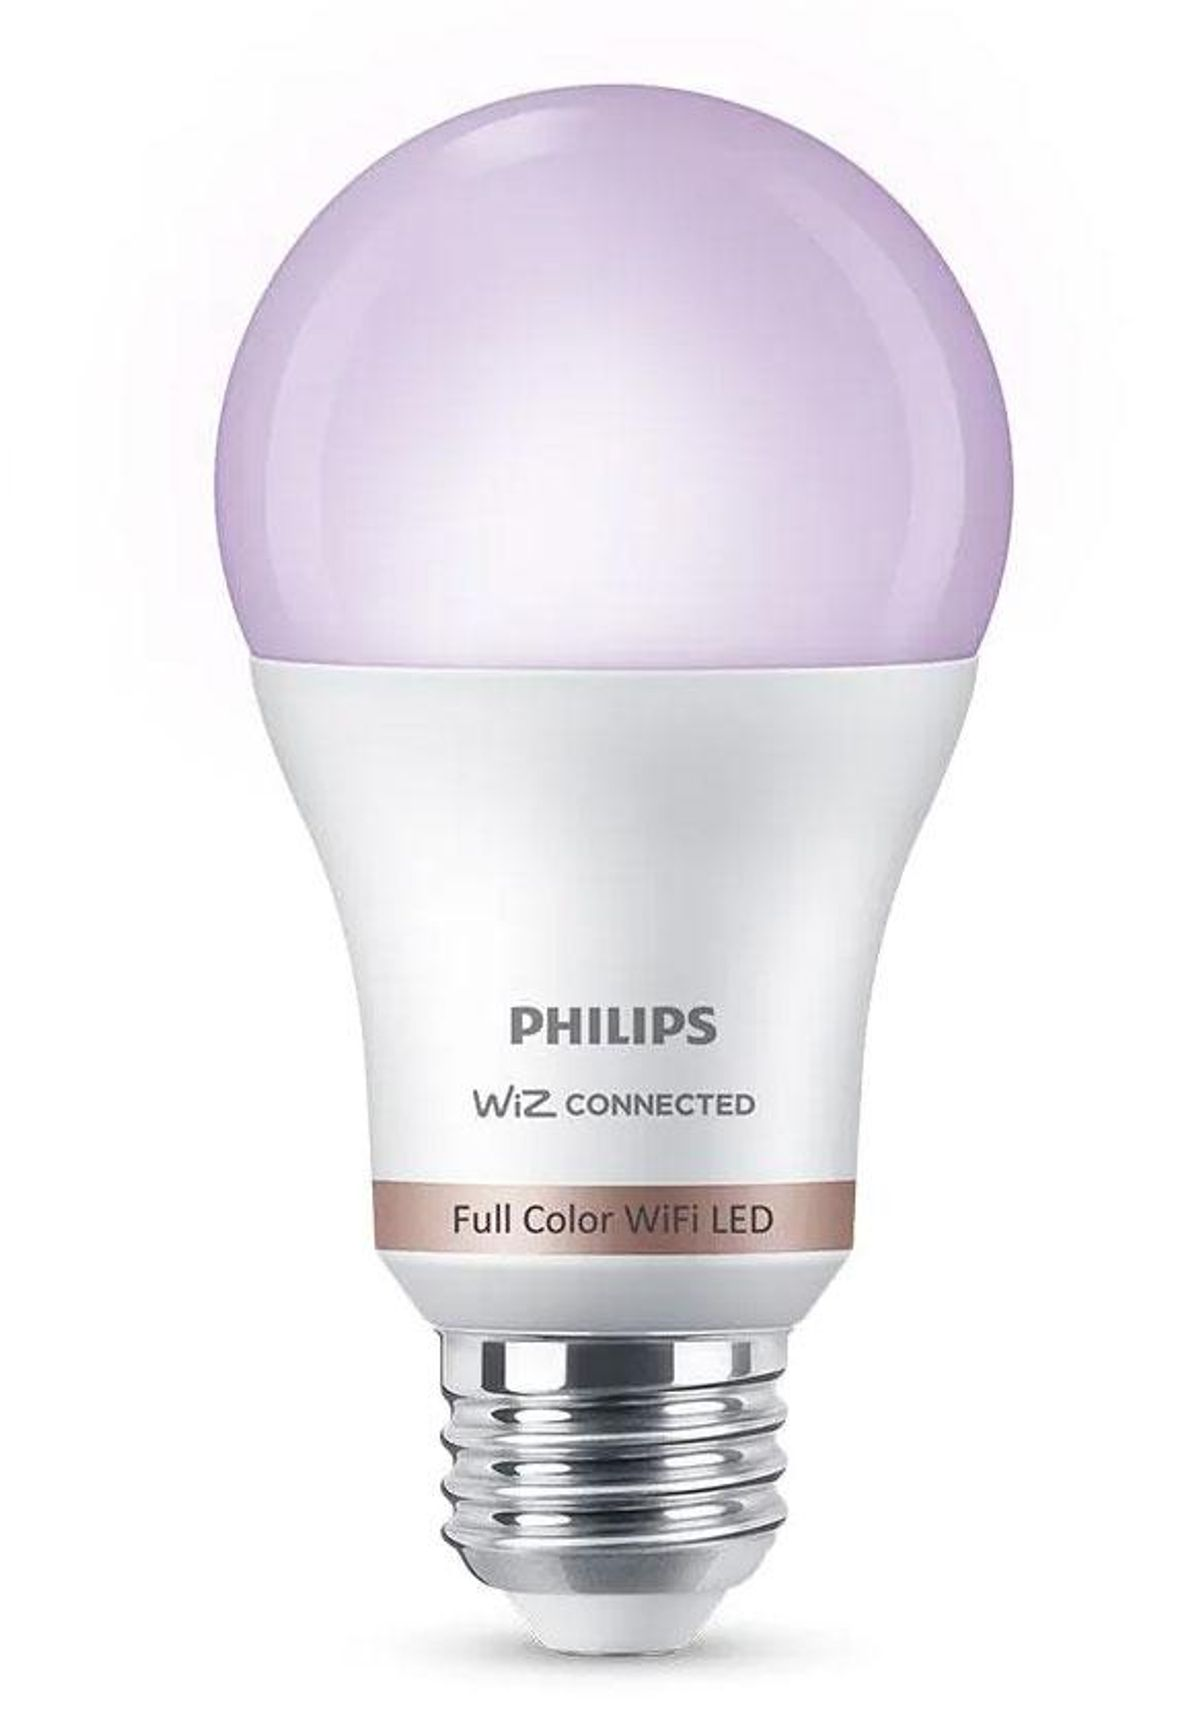 philips color and tunable white a19 led 60 watt equivalent dimmable smart wi fi wiz connected wireless light bulb